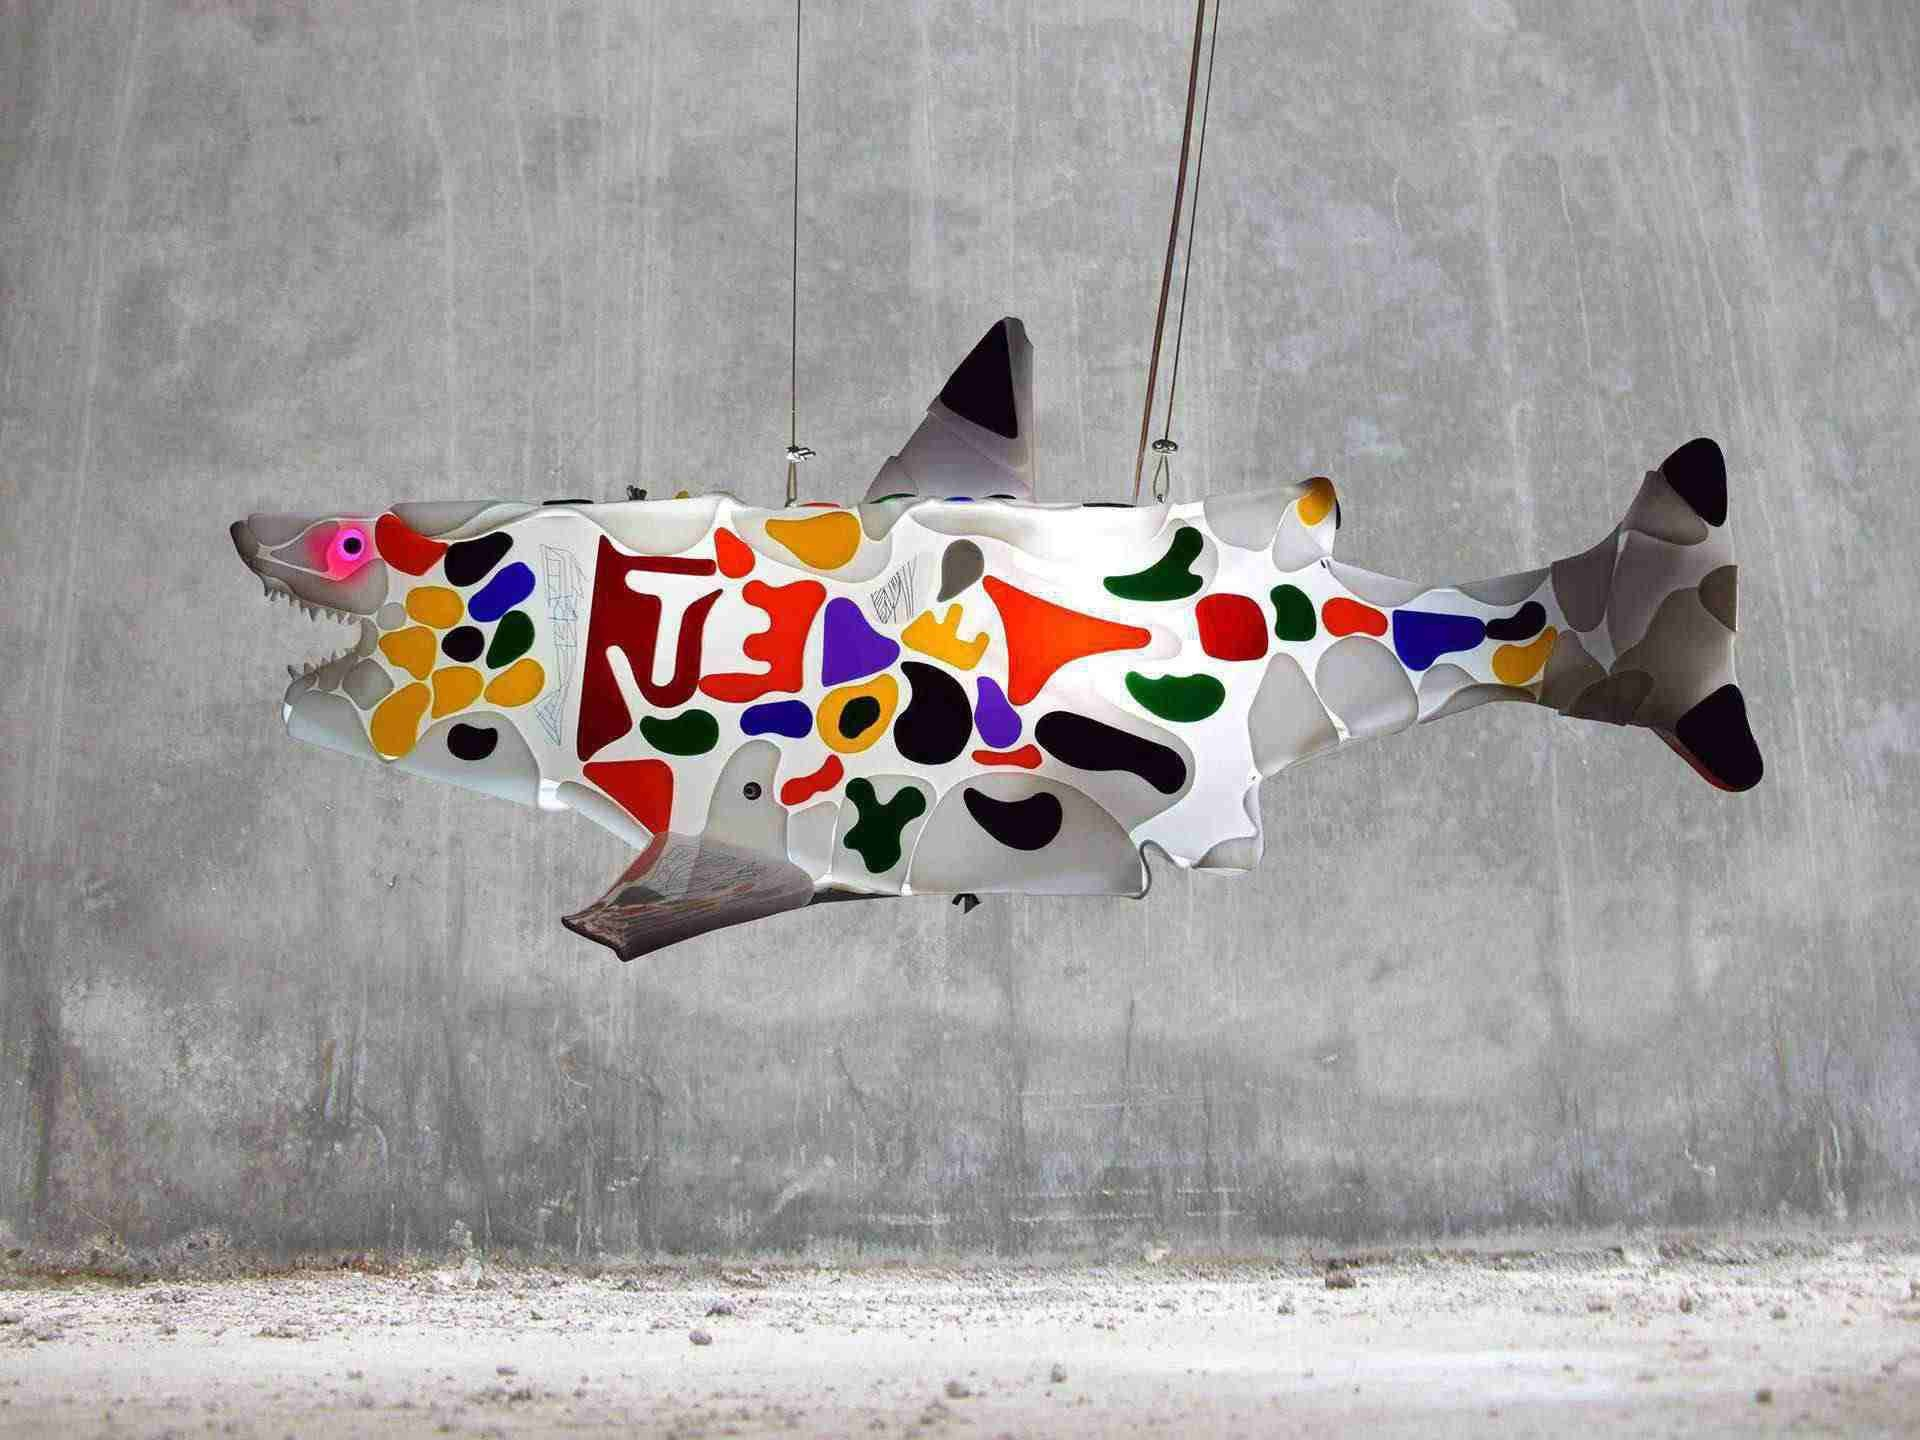 Guided by instinct is a sculpture from shark sculptures series.